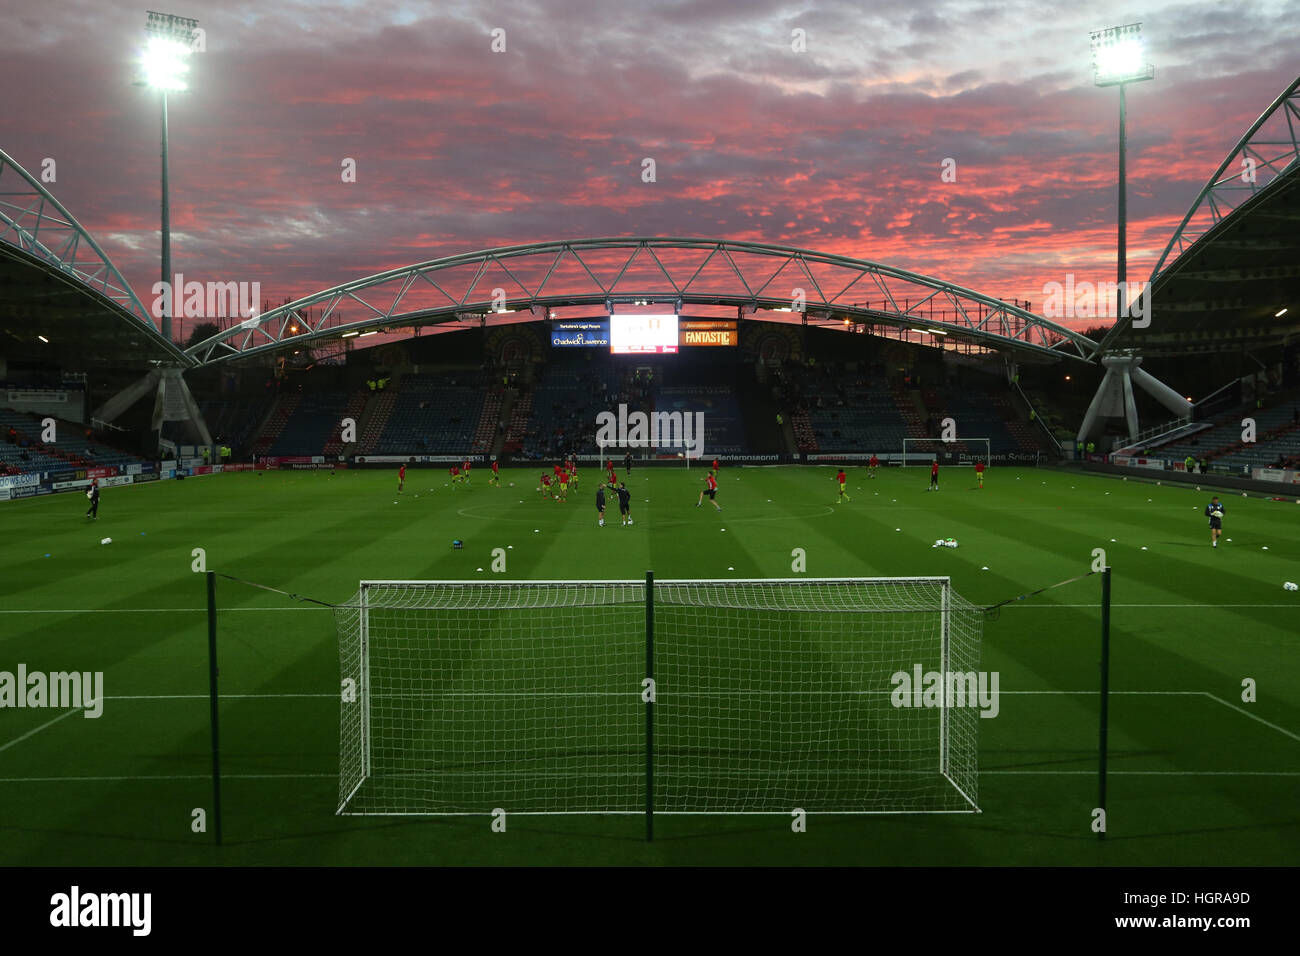 The sun sets over the John Smith's Stadium in Huddersfield before kick off in the Sky Bet Championship tie between - Stock Image